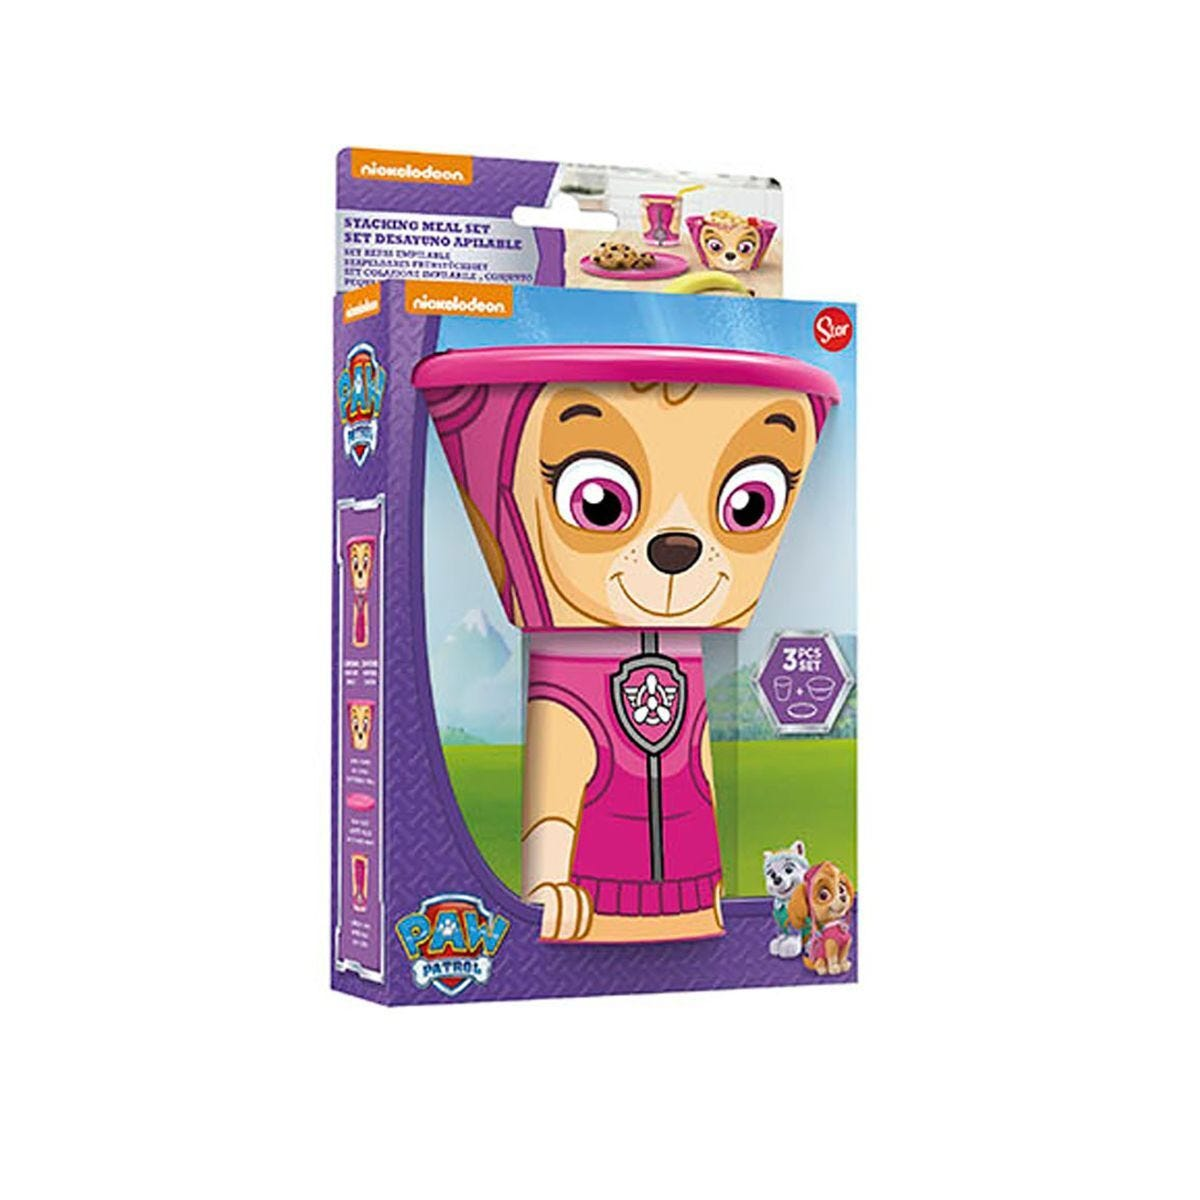 Paw Patrol Stacking Meal Set Pink